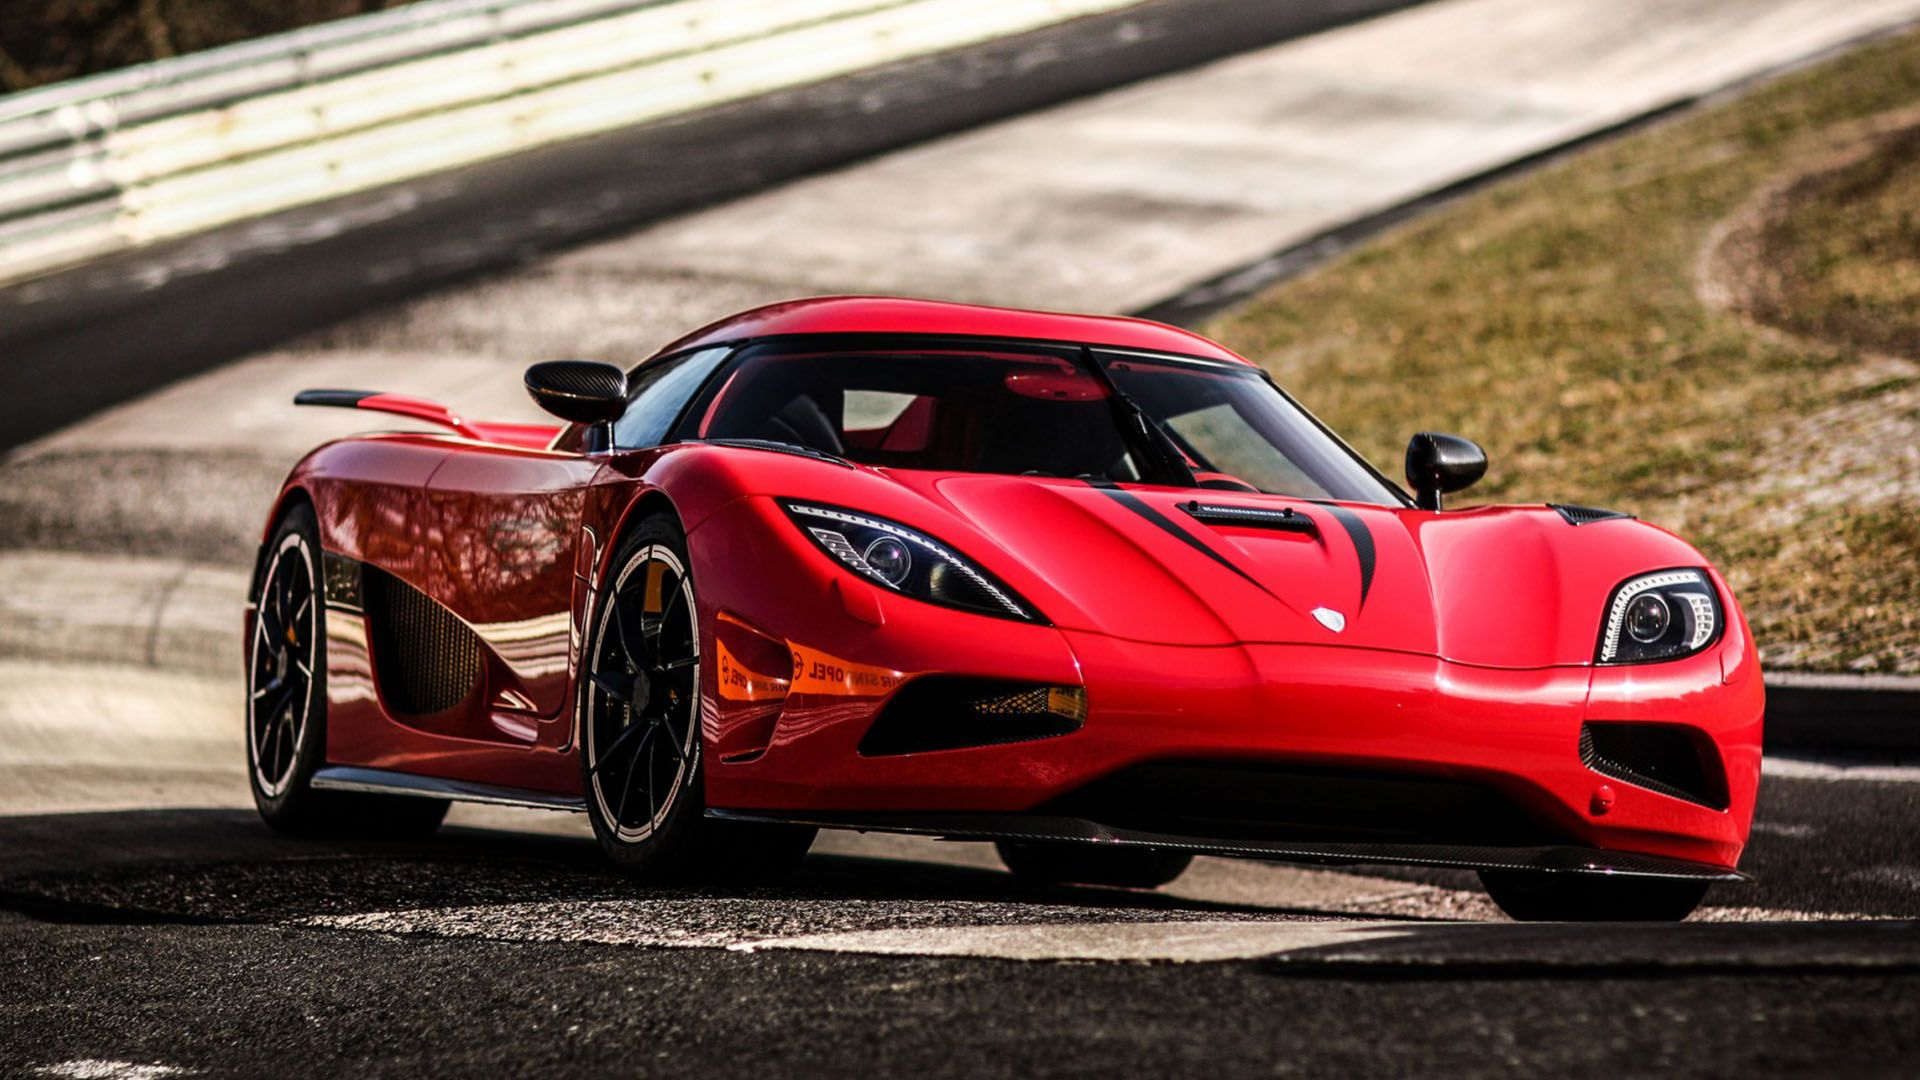 http://static0.therichestimages.com/cdn/1000/562/90/cw/wp-content/uploads/2015/04/Koenigsegg-Agera-R.jpg